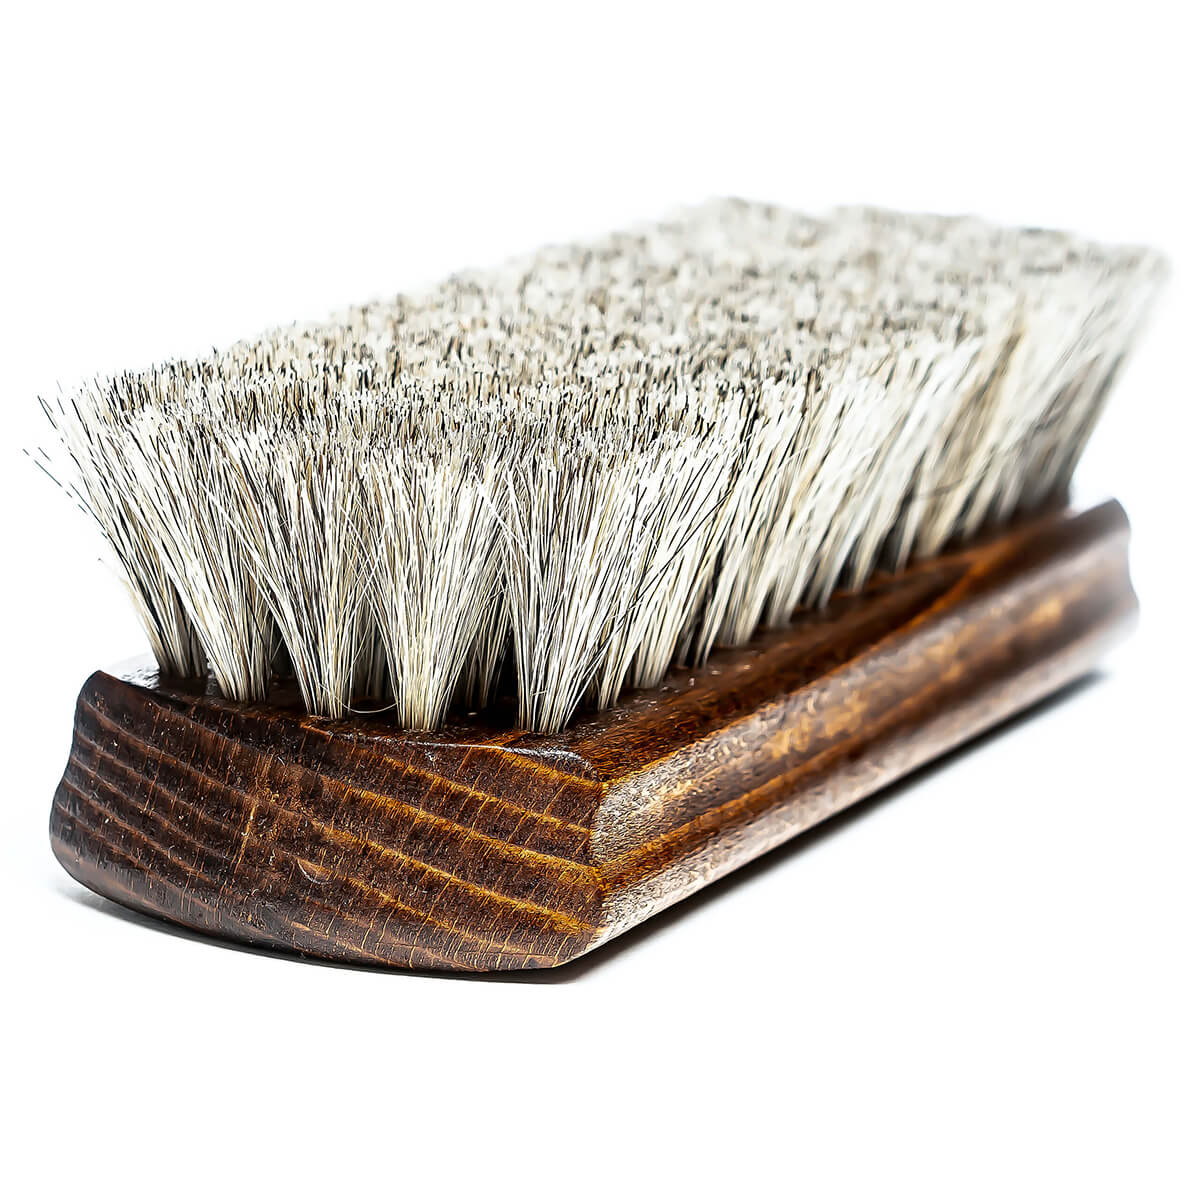 Collonil shining brush